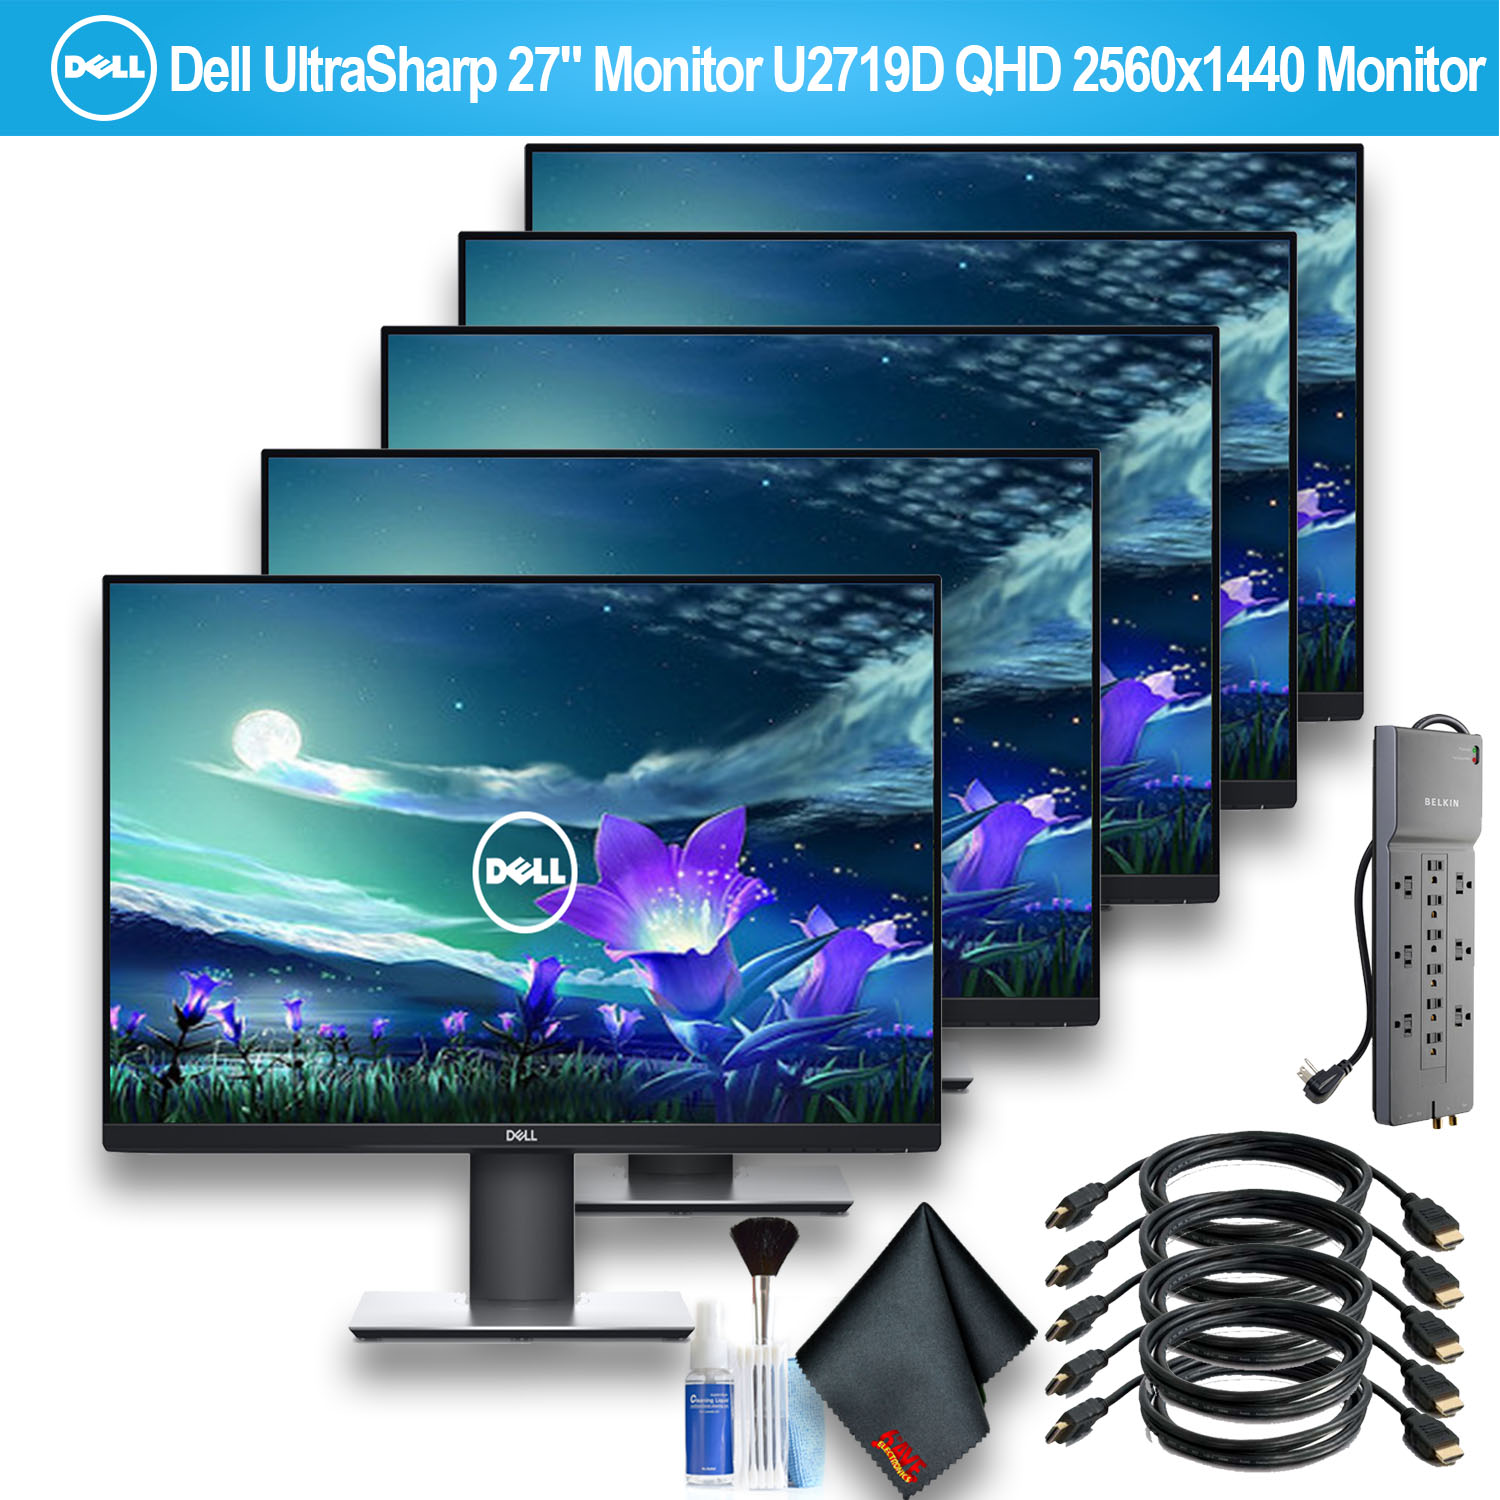 """Dell UltraSharp 27"""" Monitor U2719D QHD 2560x1440 Monitor With 1 - Belkin PowerStrip and 5 HDMI Cables - 5 Pack"""